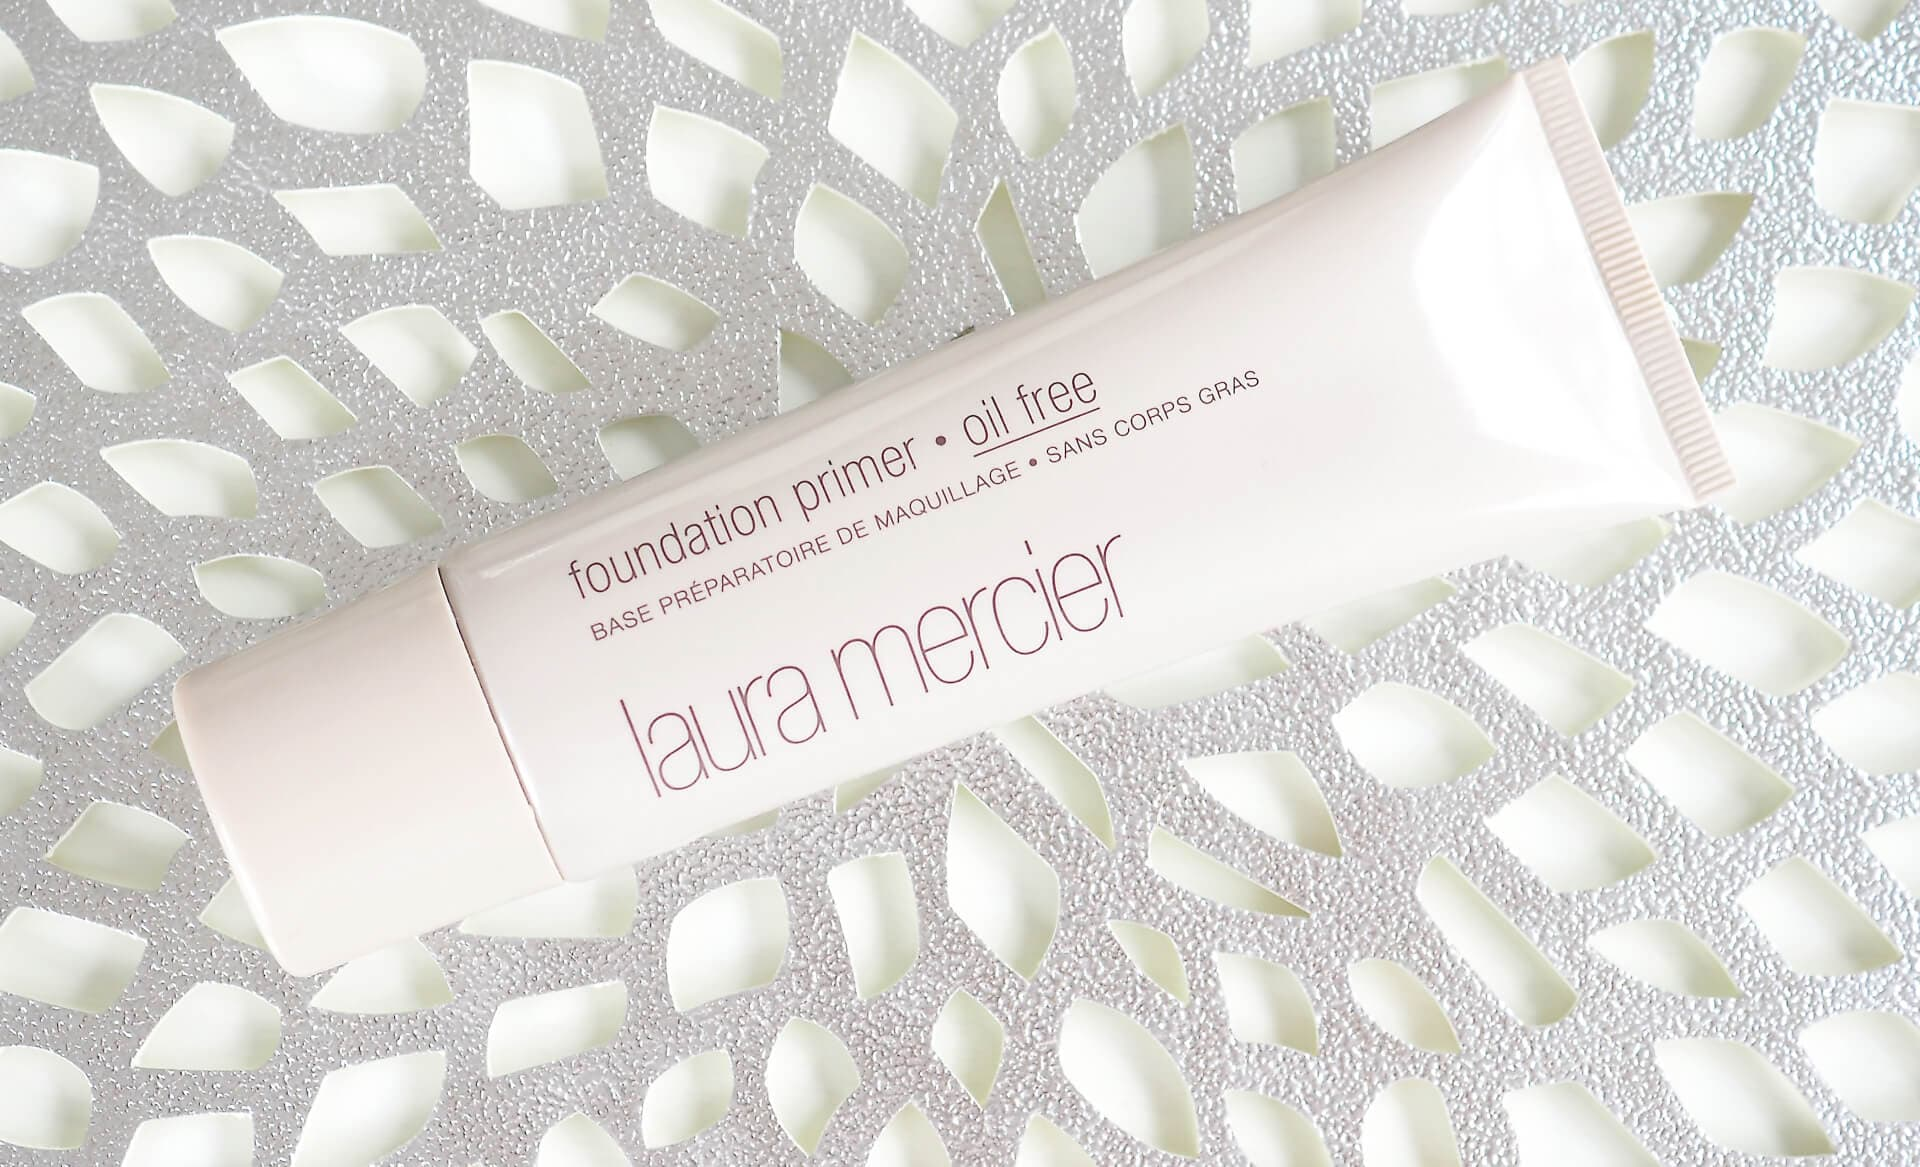 LAURA MERCIER OIL FREE PRIMER